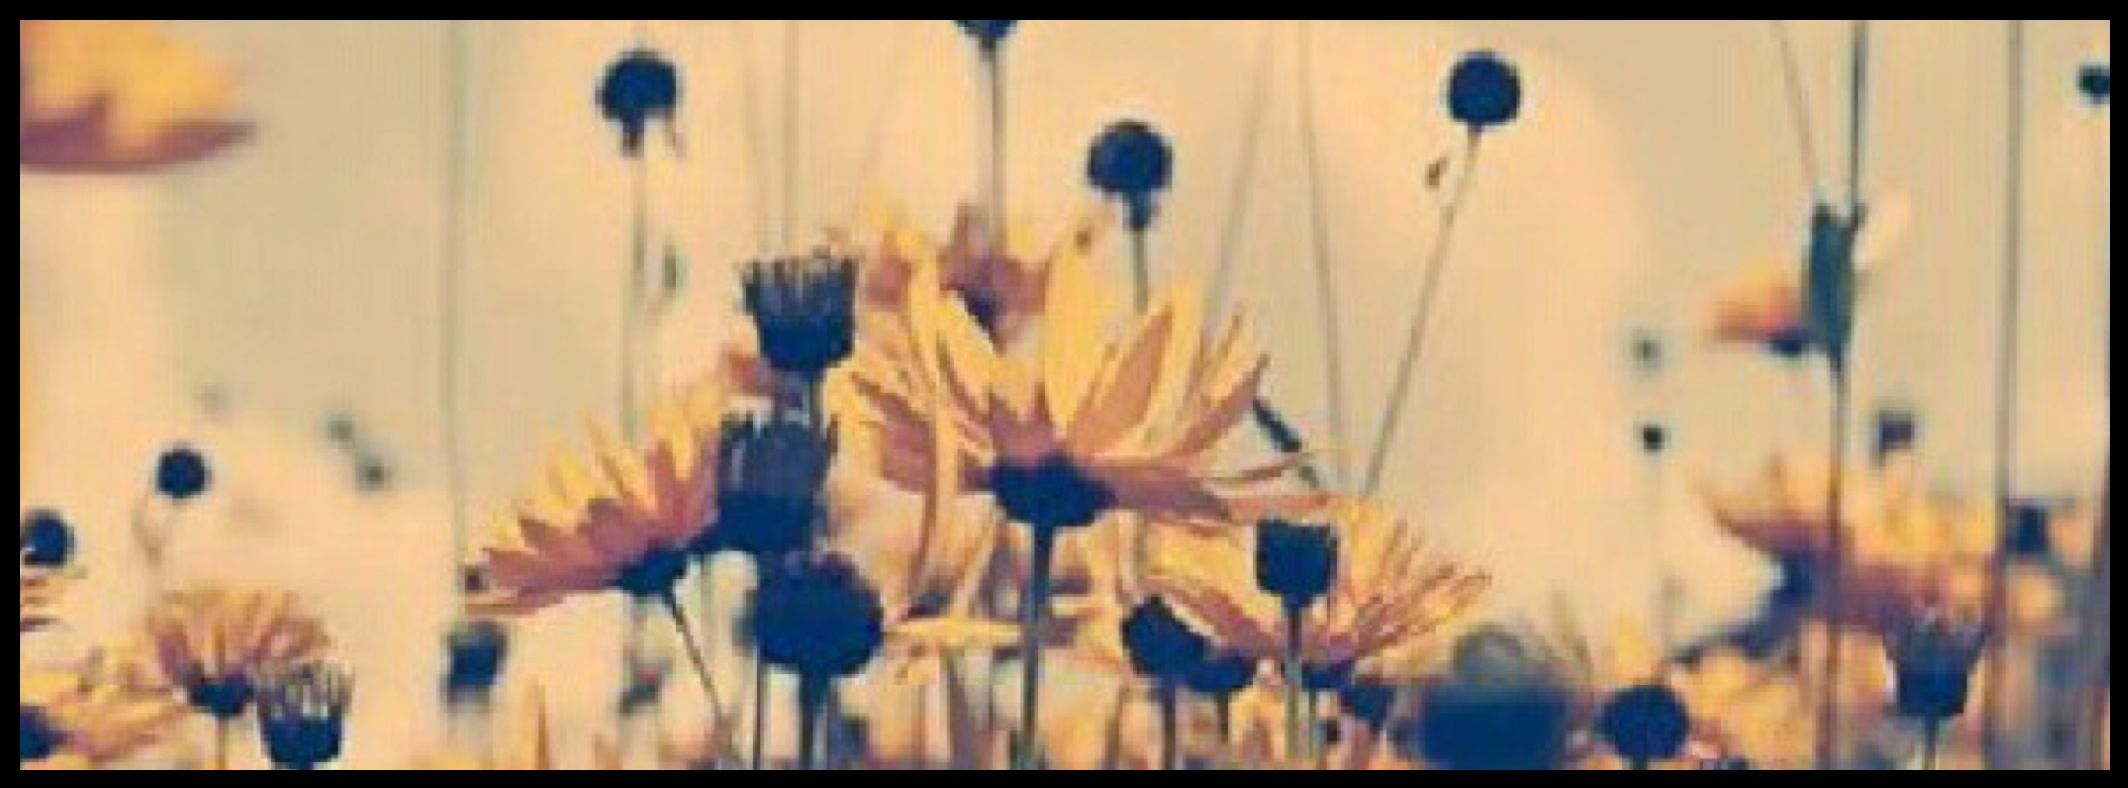 Flowers Nature Facebook Cover Photo Twitter Cover Photo Best Facebook Cover Photos Facebook Cover Photos Quotes